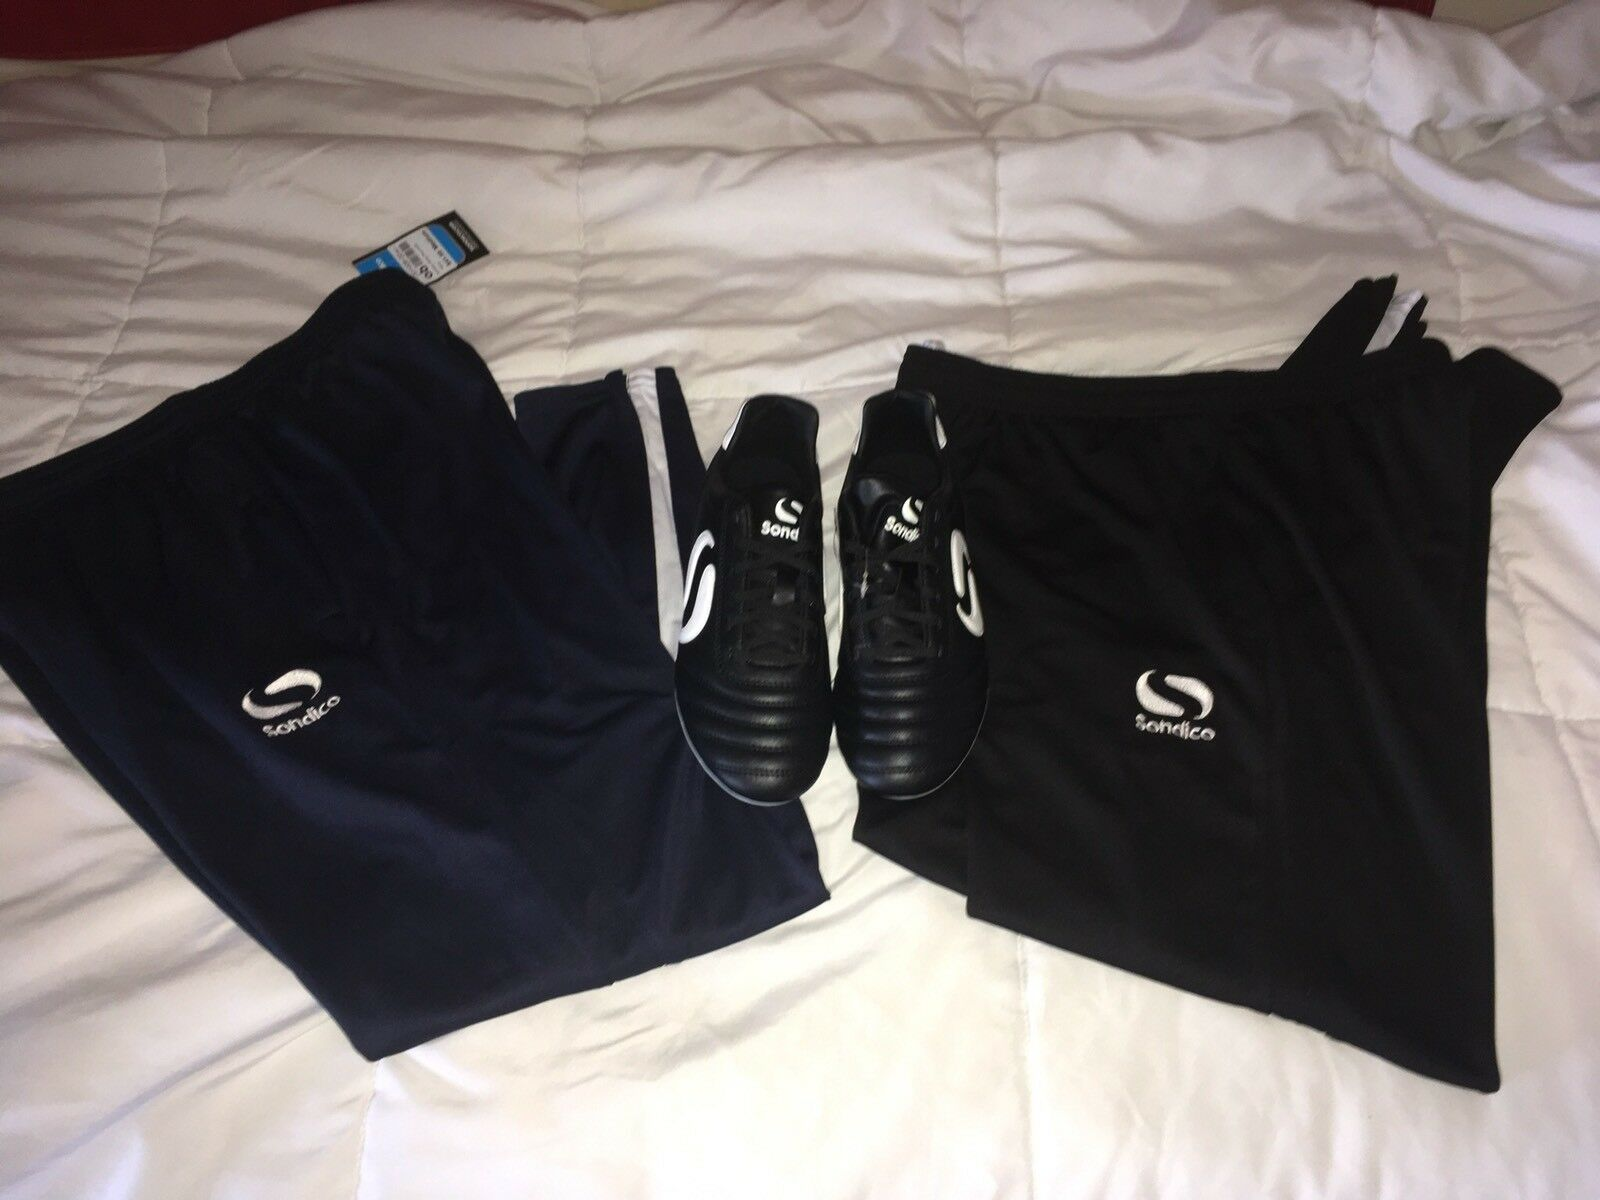 Sondico W/ Strike FG Cleats Schuhes  Men's Größe 8 W/ Sondico Training Pants Med Lot NWT e205bd